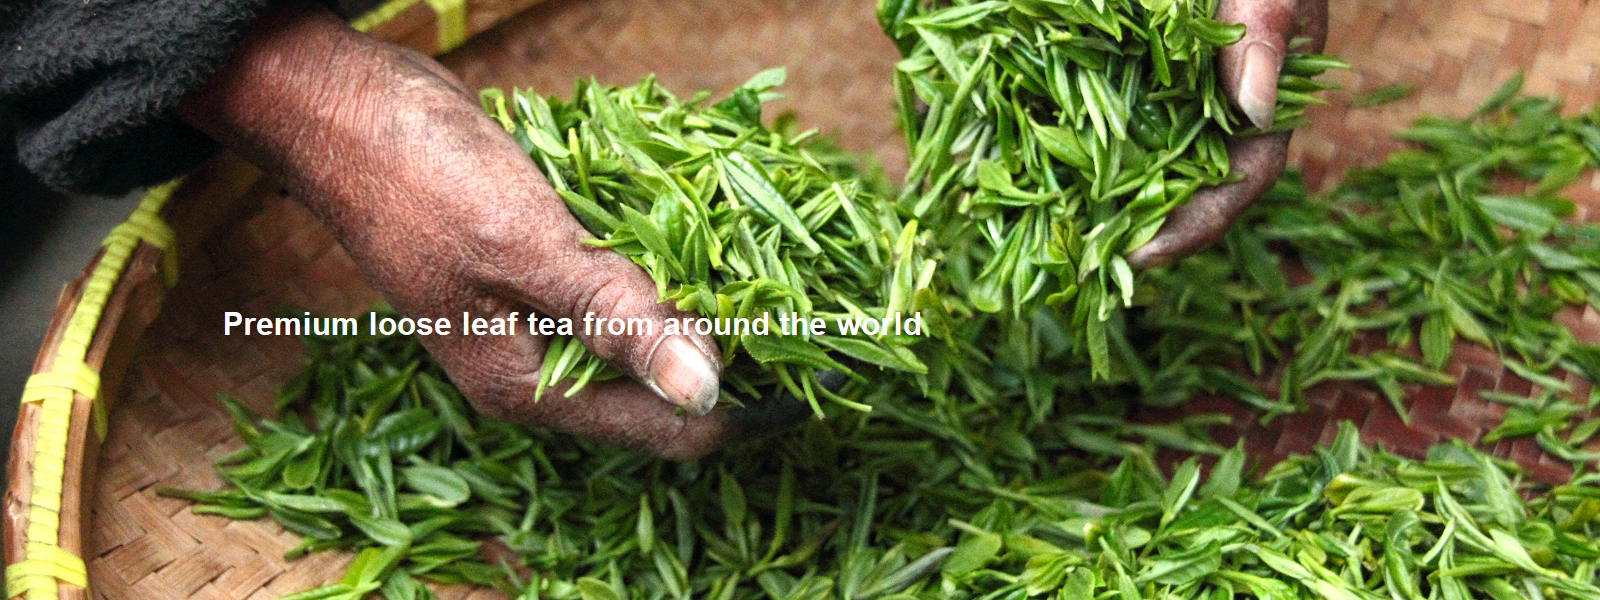 Premium loose leaf tea from around the world